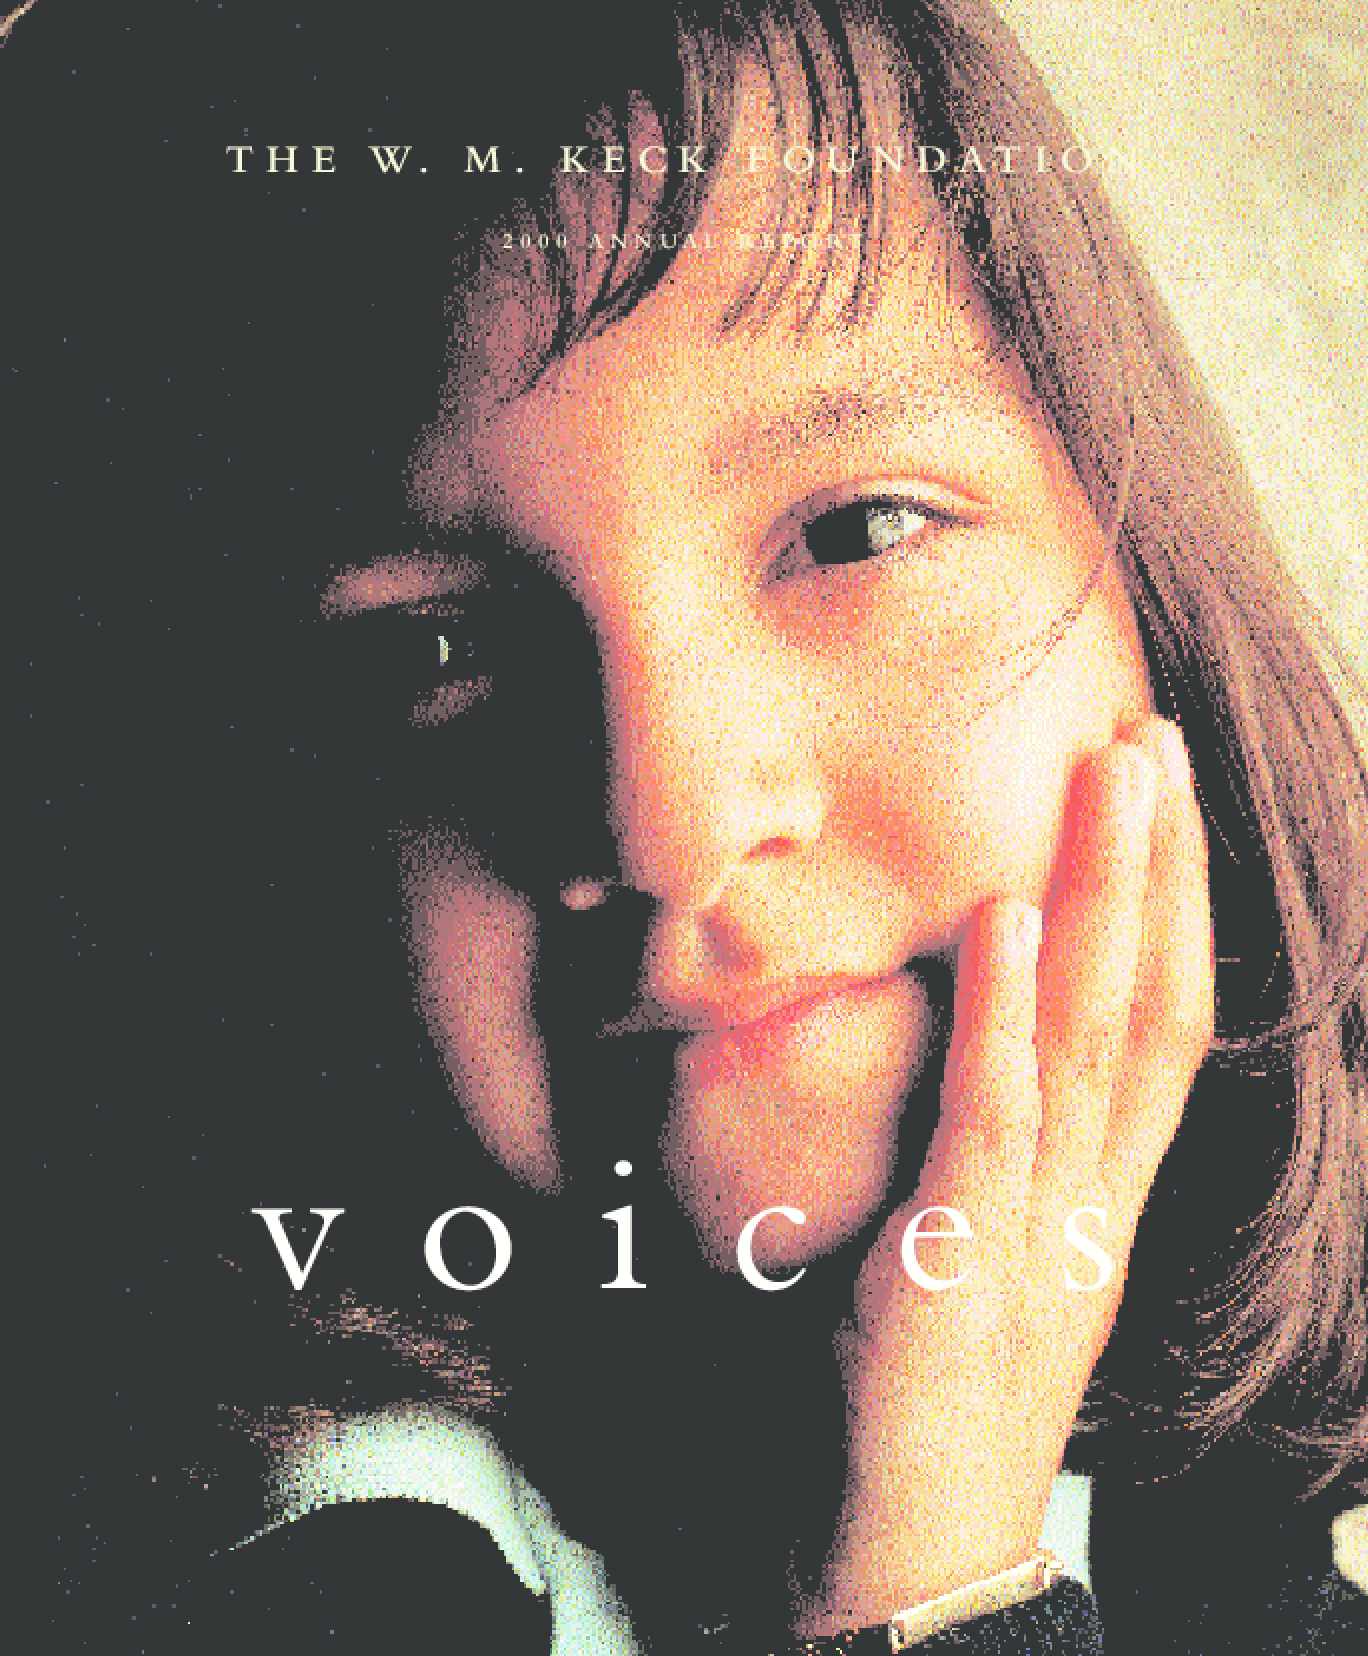 W. M. Keck Foundation - 2000 Annual Report: Voices